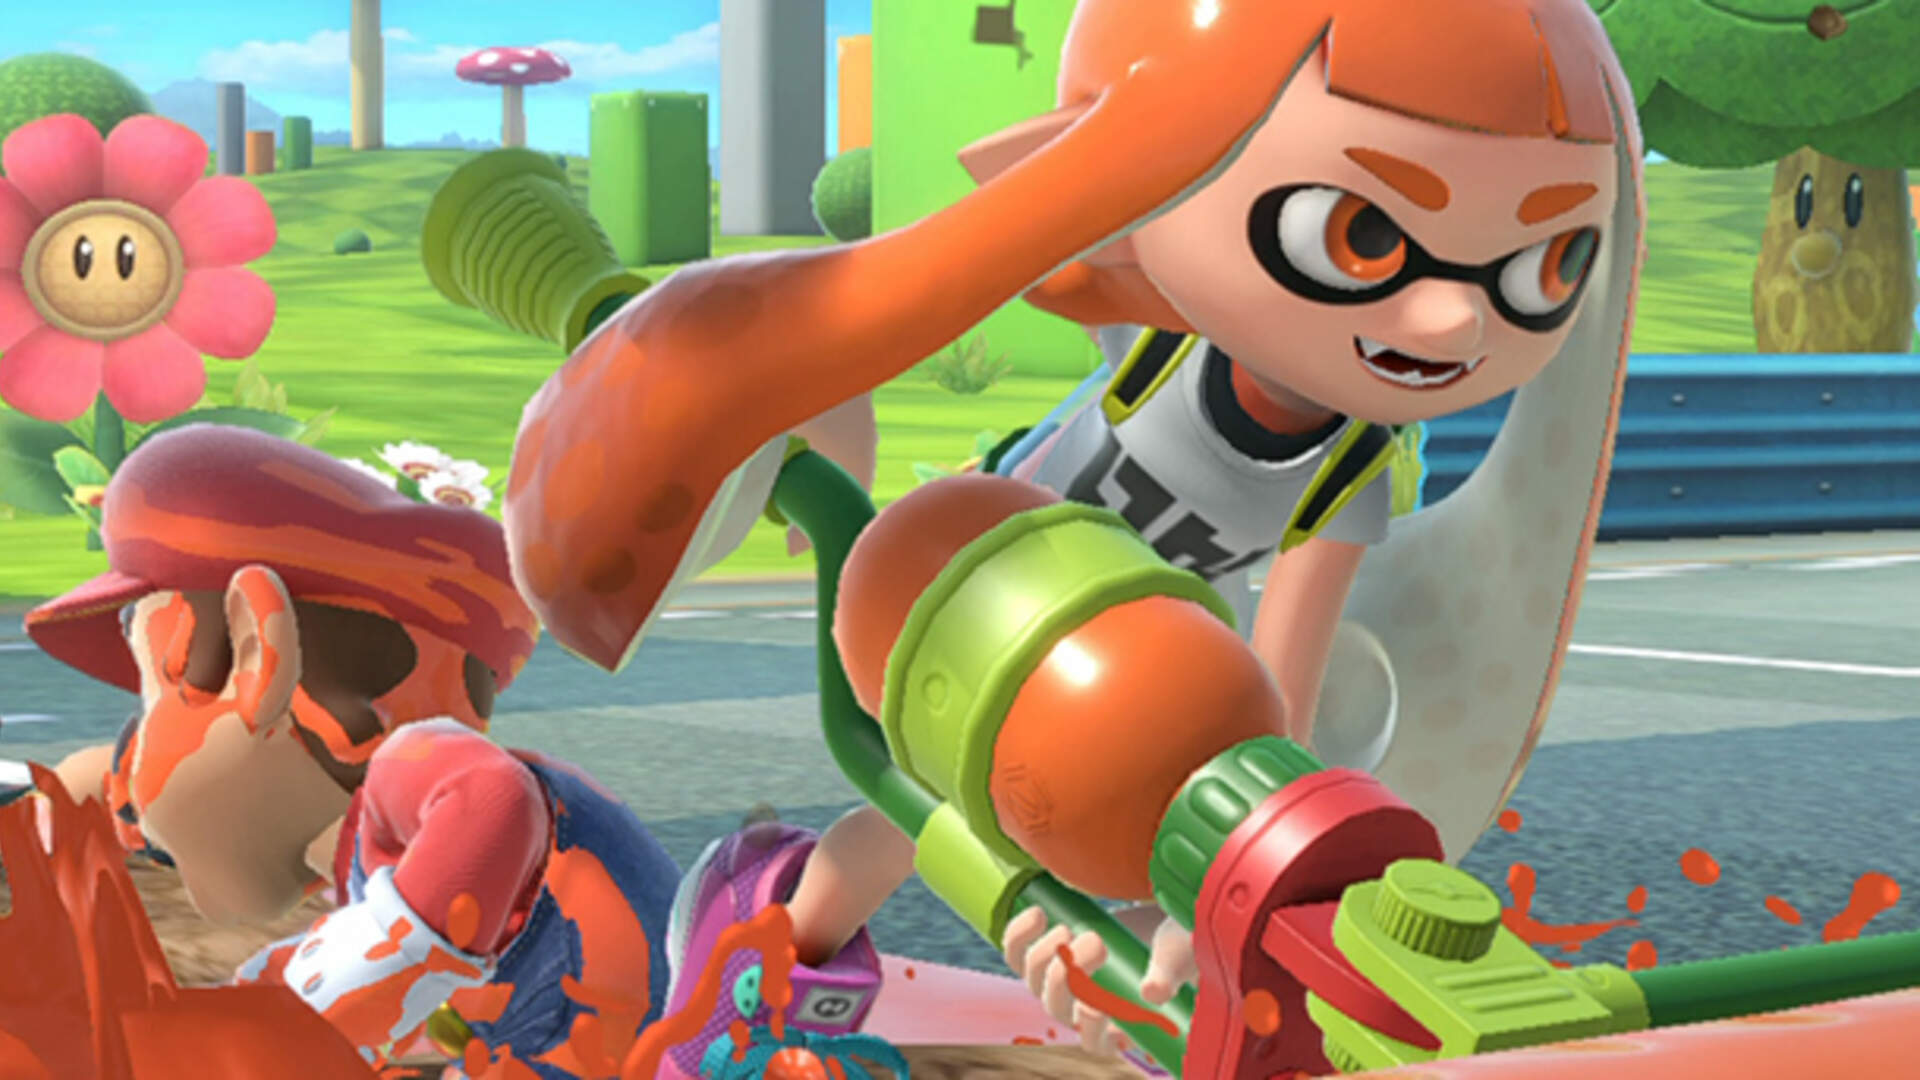 Nintendo Talks About the Possibility of Super Smash Bros Ultimate DLC